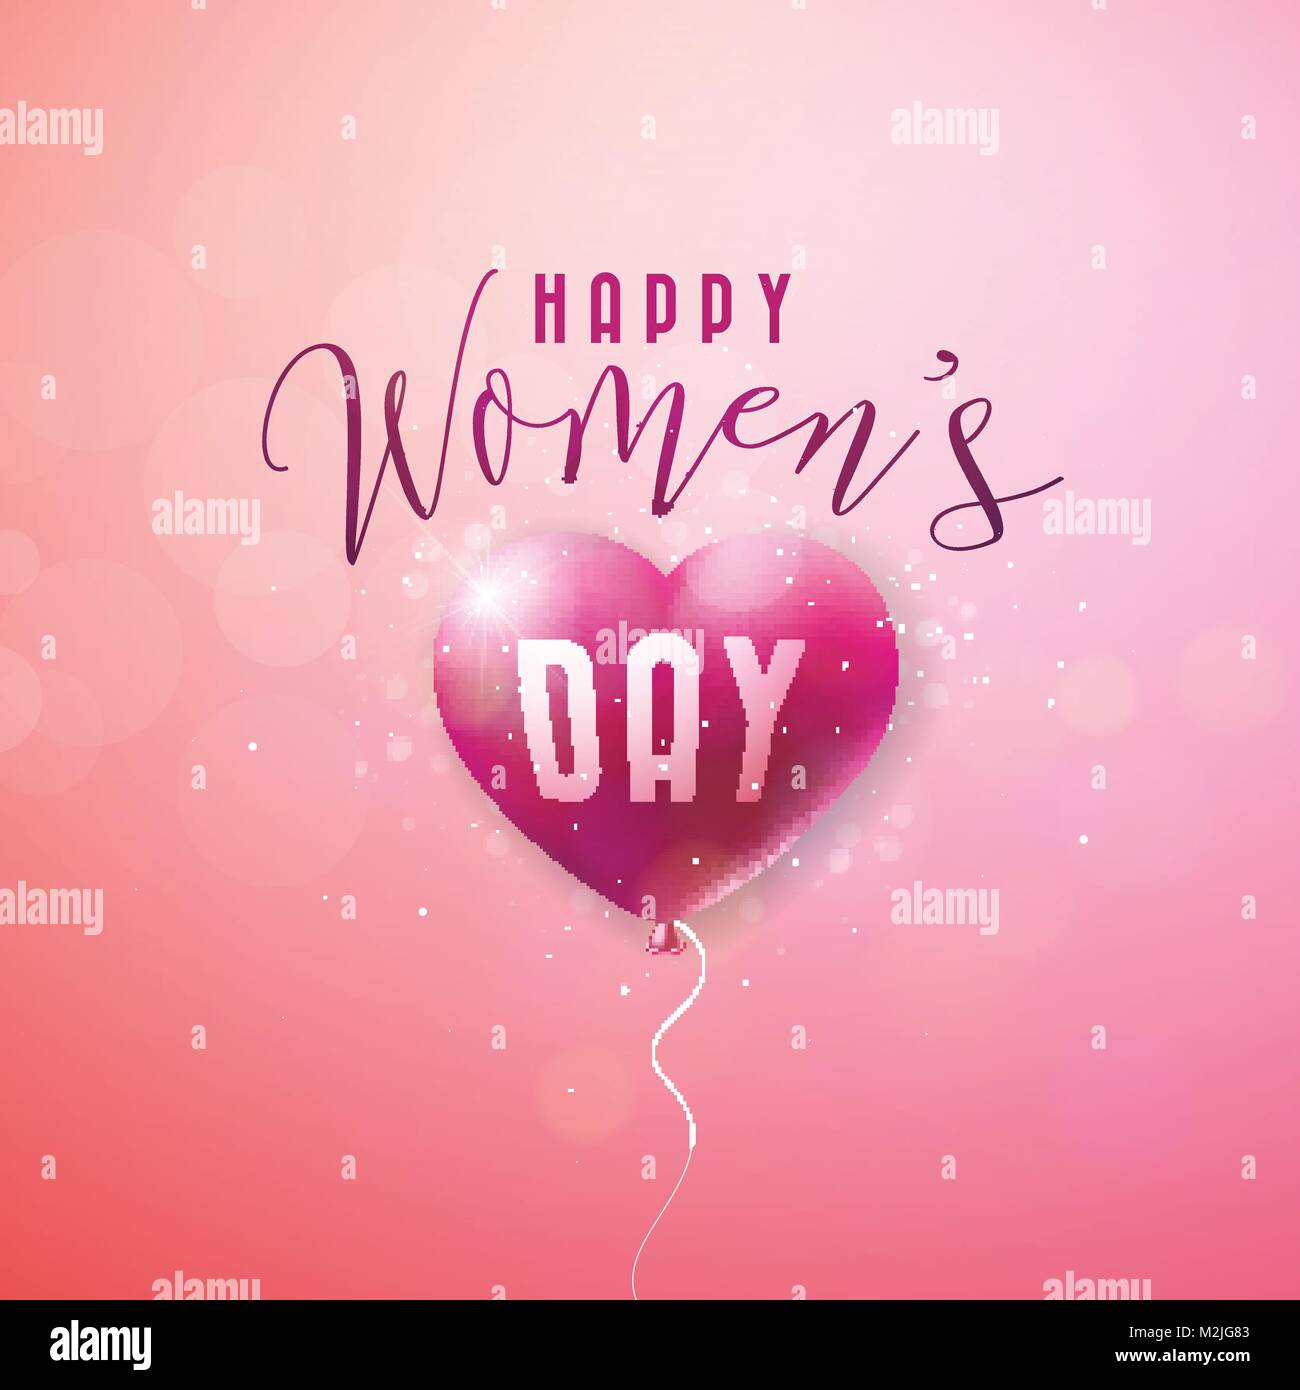 Happy womens day greeting card international holiday illustration happy womens day greeting card international holiday illustration with red balloon heart design on pink kristyandbryce Choice Image